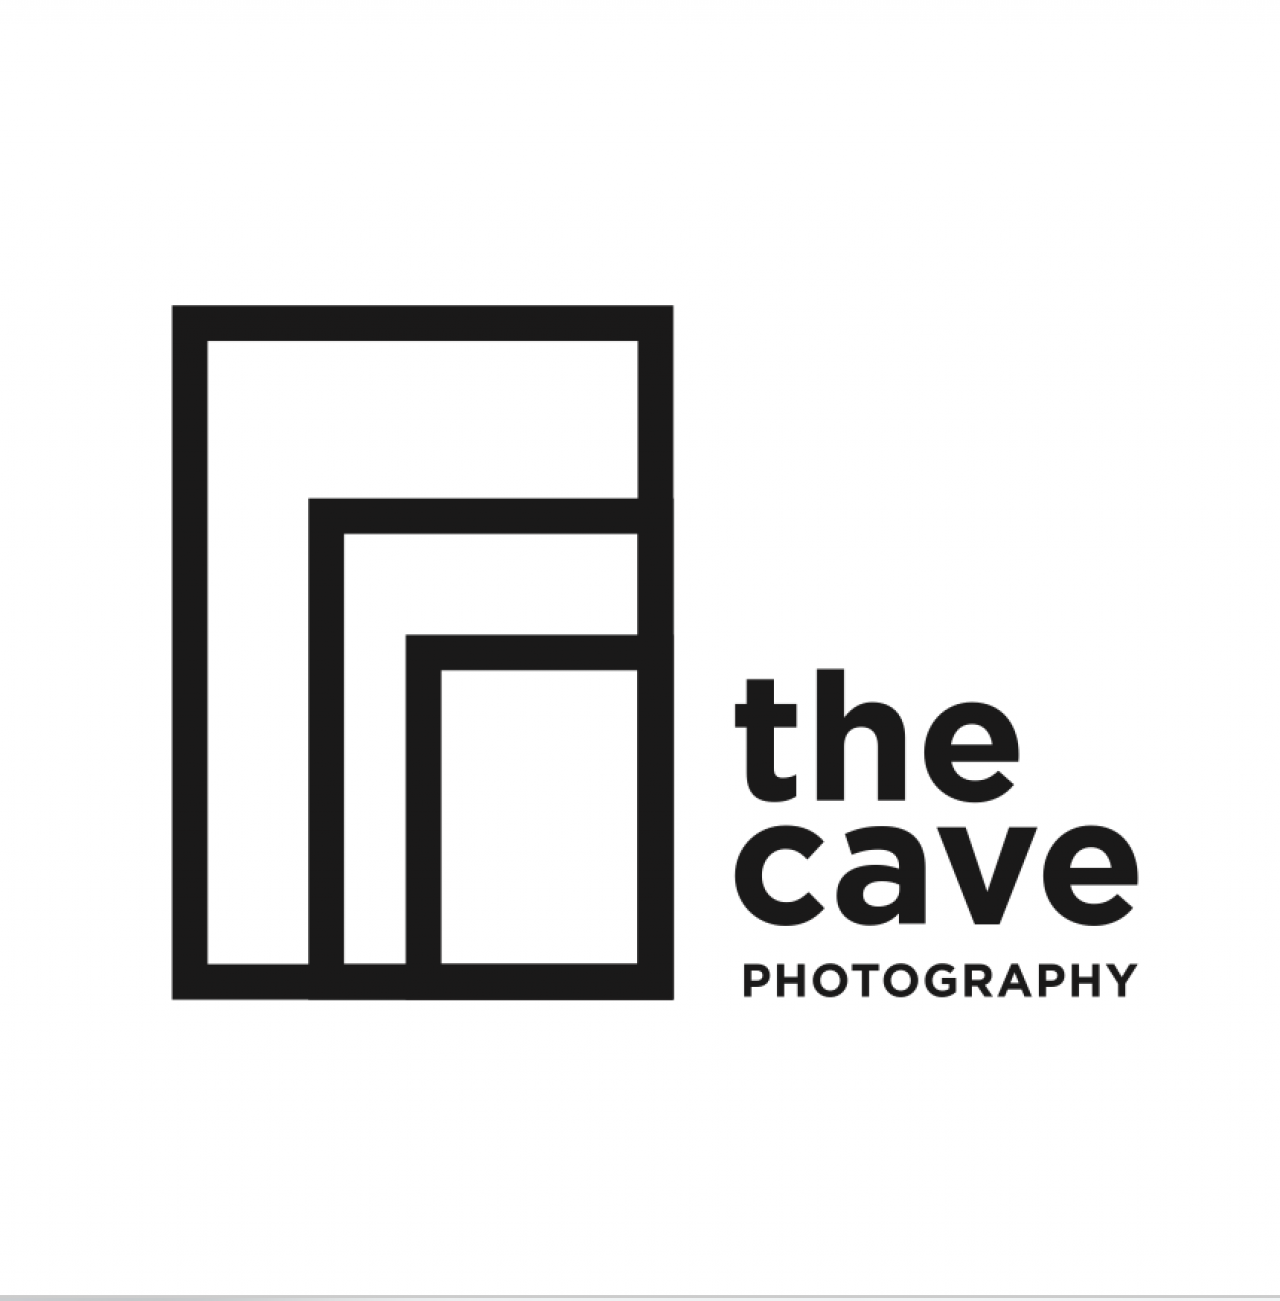 logo for THE CAVE PHOTOGRAPHY